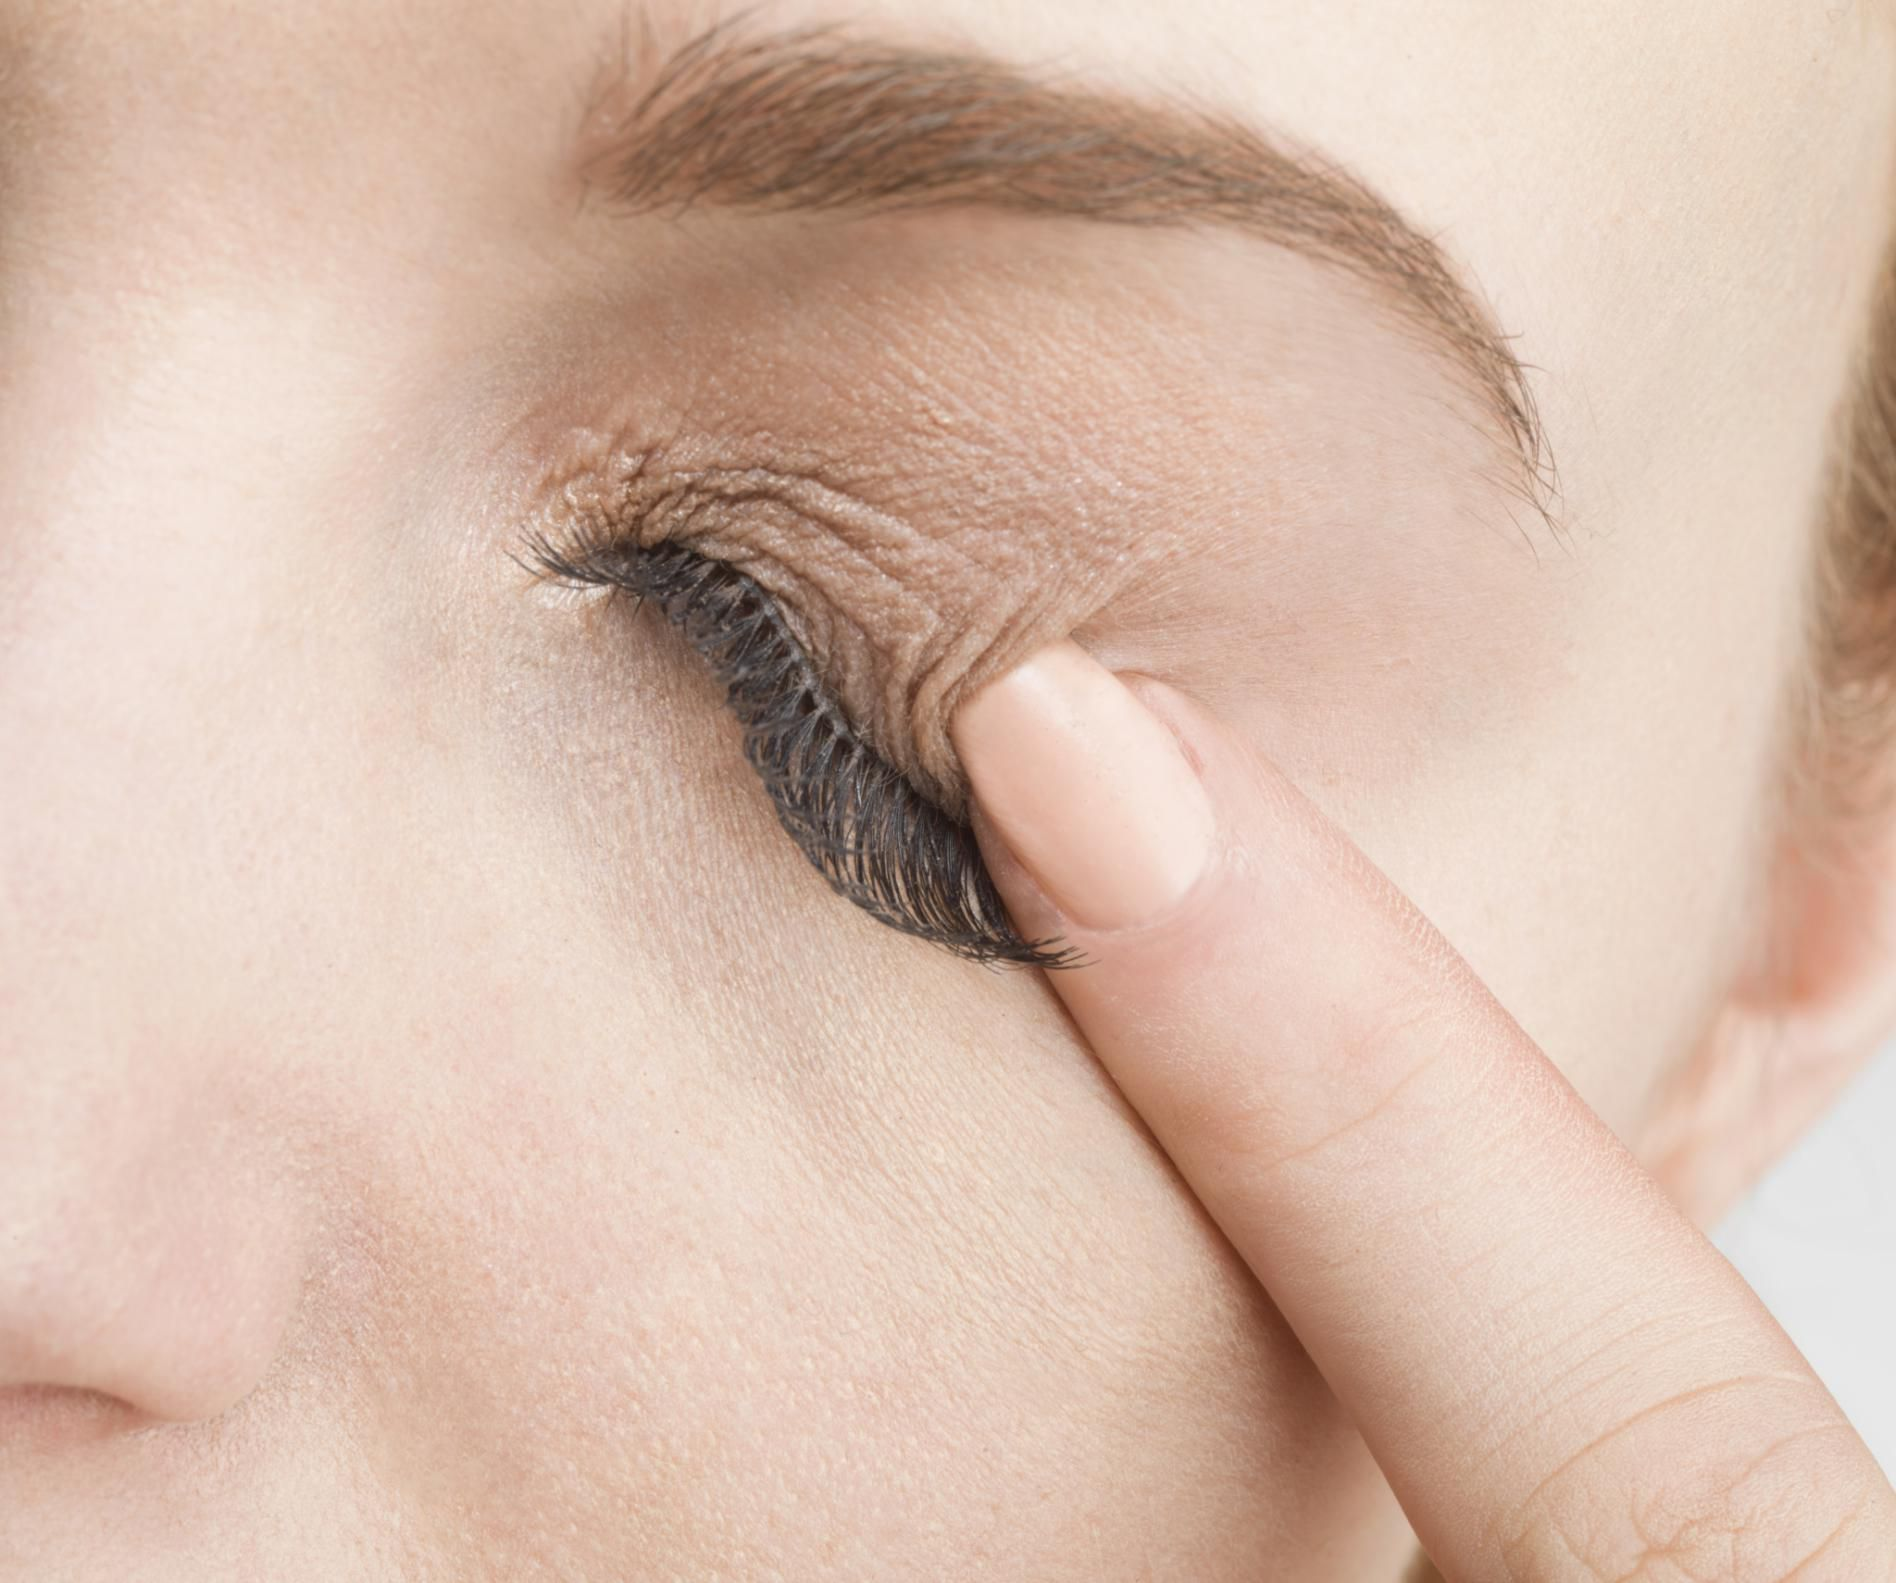 Common Causes Of Eyelid Rashes